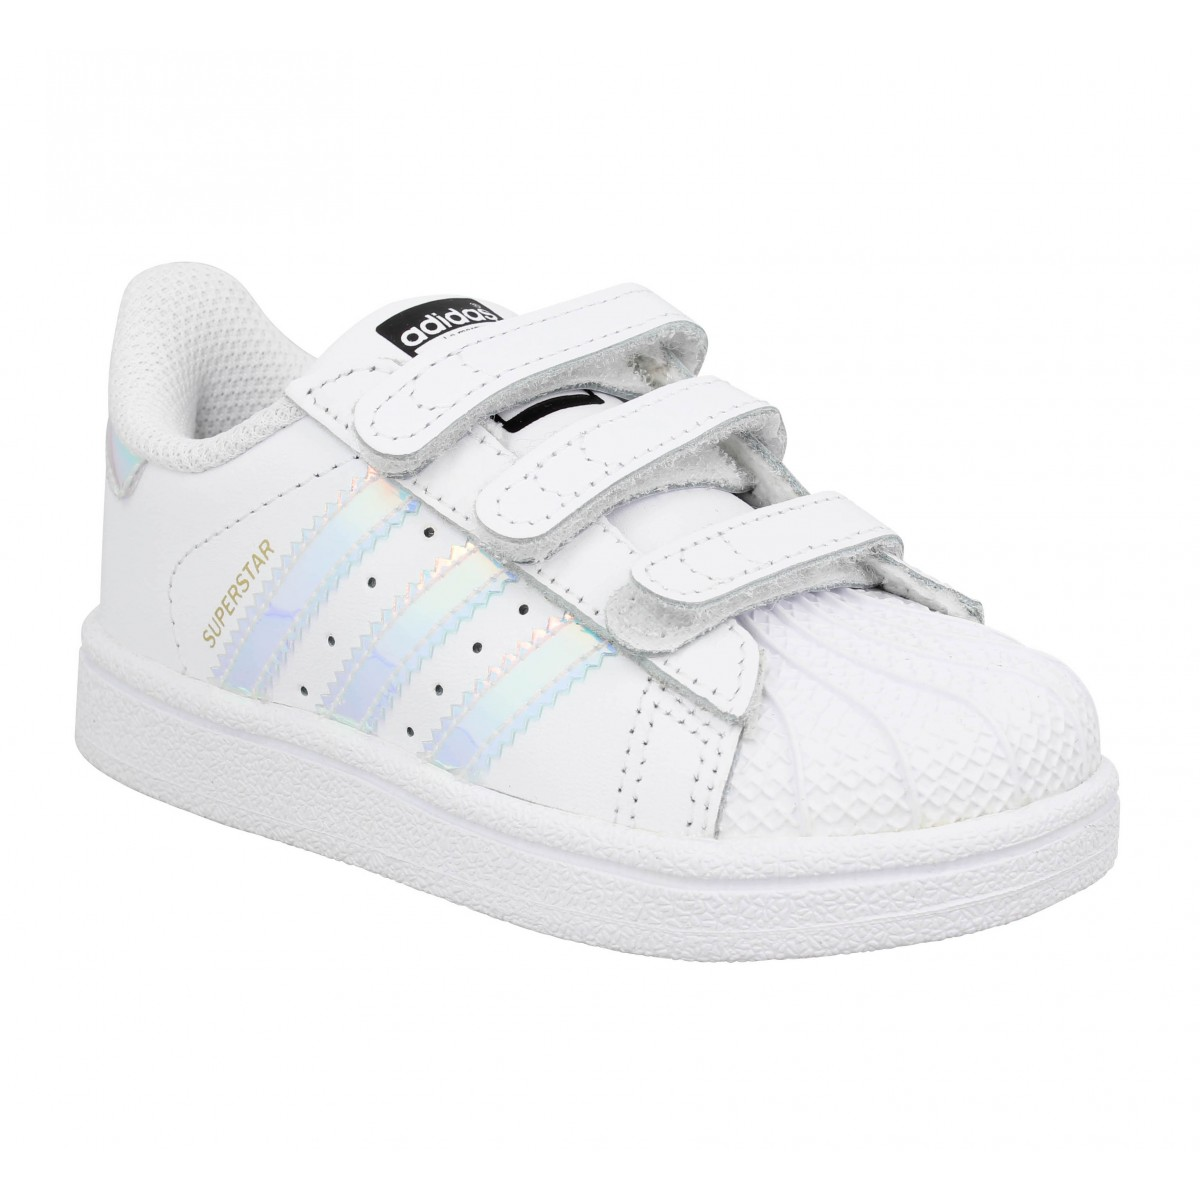 2959b5f1b1be6 Adidas superstar cuir enfant metsilver enfants